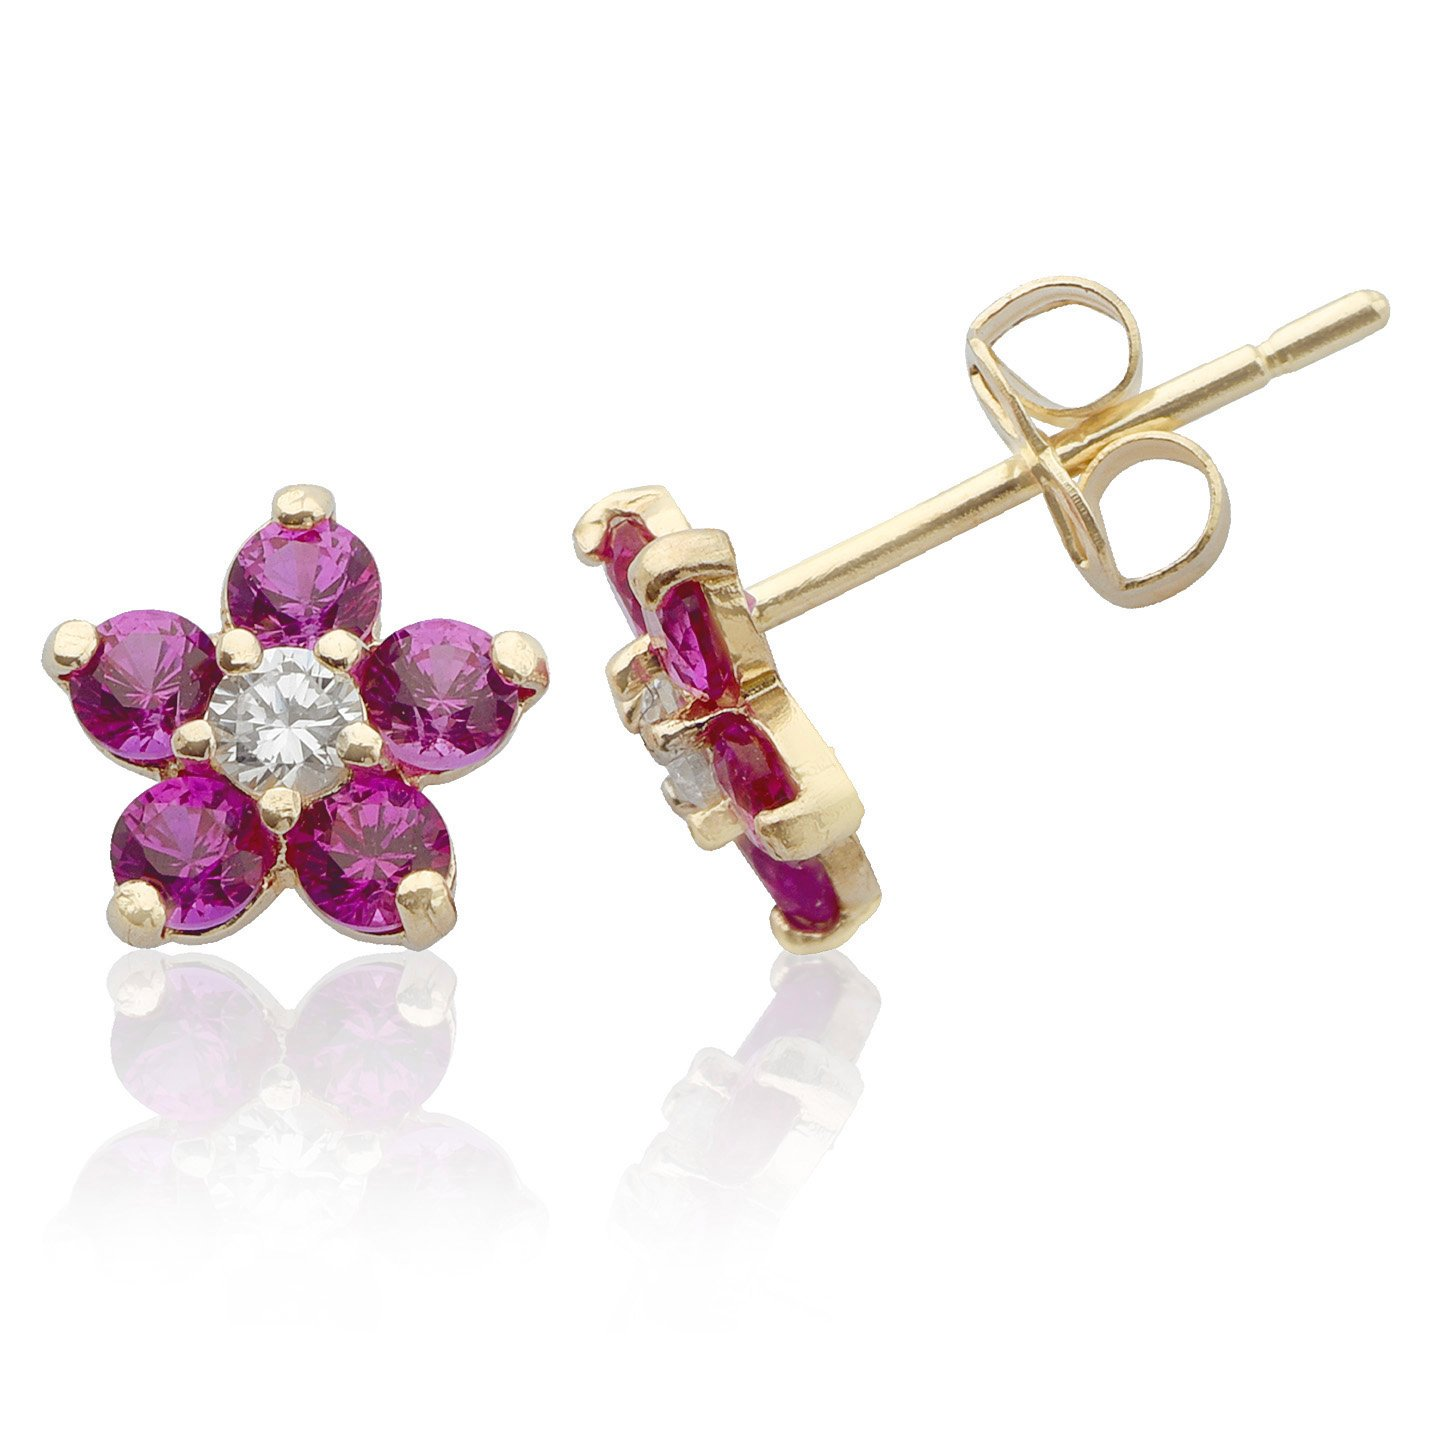 14k Yellow Gold Red and White CZ Flower Stud Earring for Women and Girls Jewel Connection OC24917